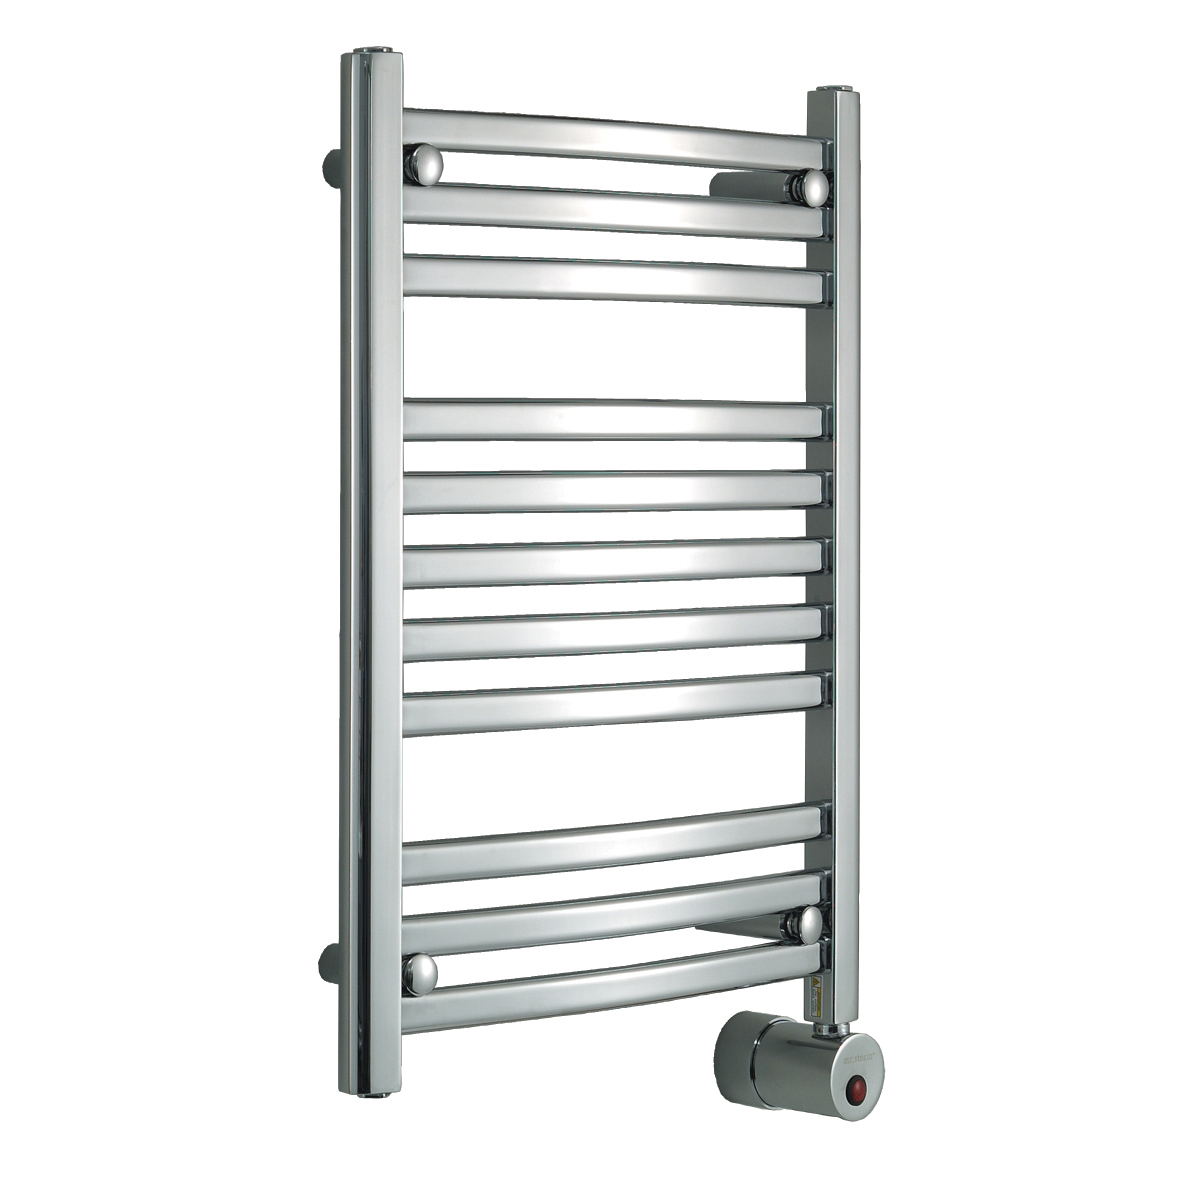 Big Size Stainless Towel Warmer Heated Towel Rack: Mr. Steam W228 Electric Heated Towel Warmer